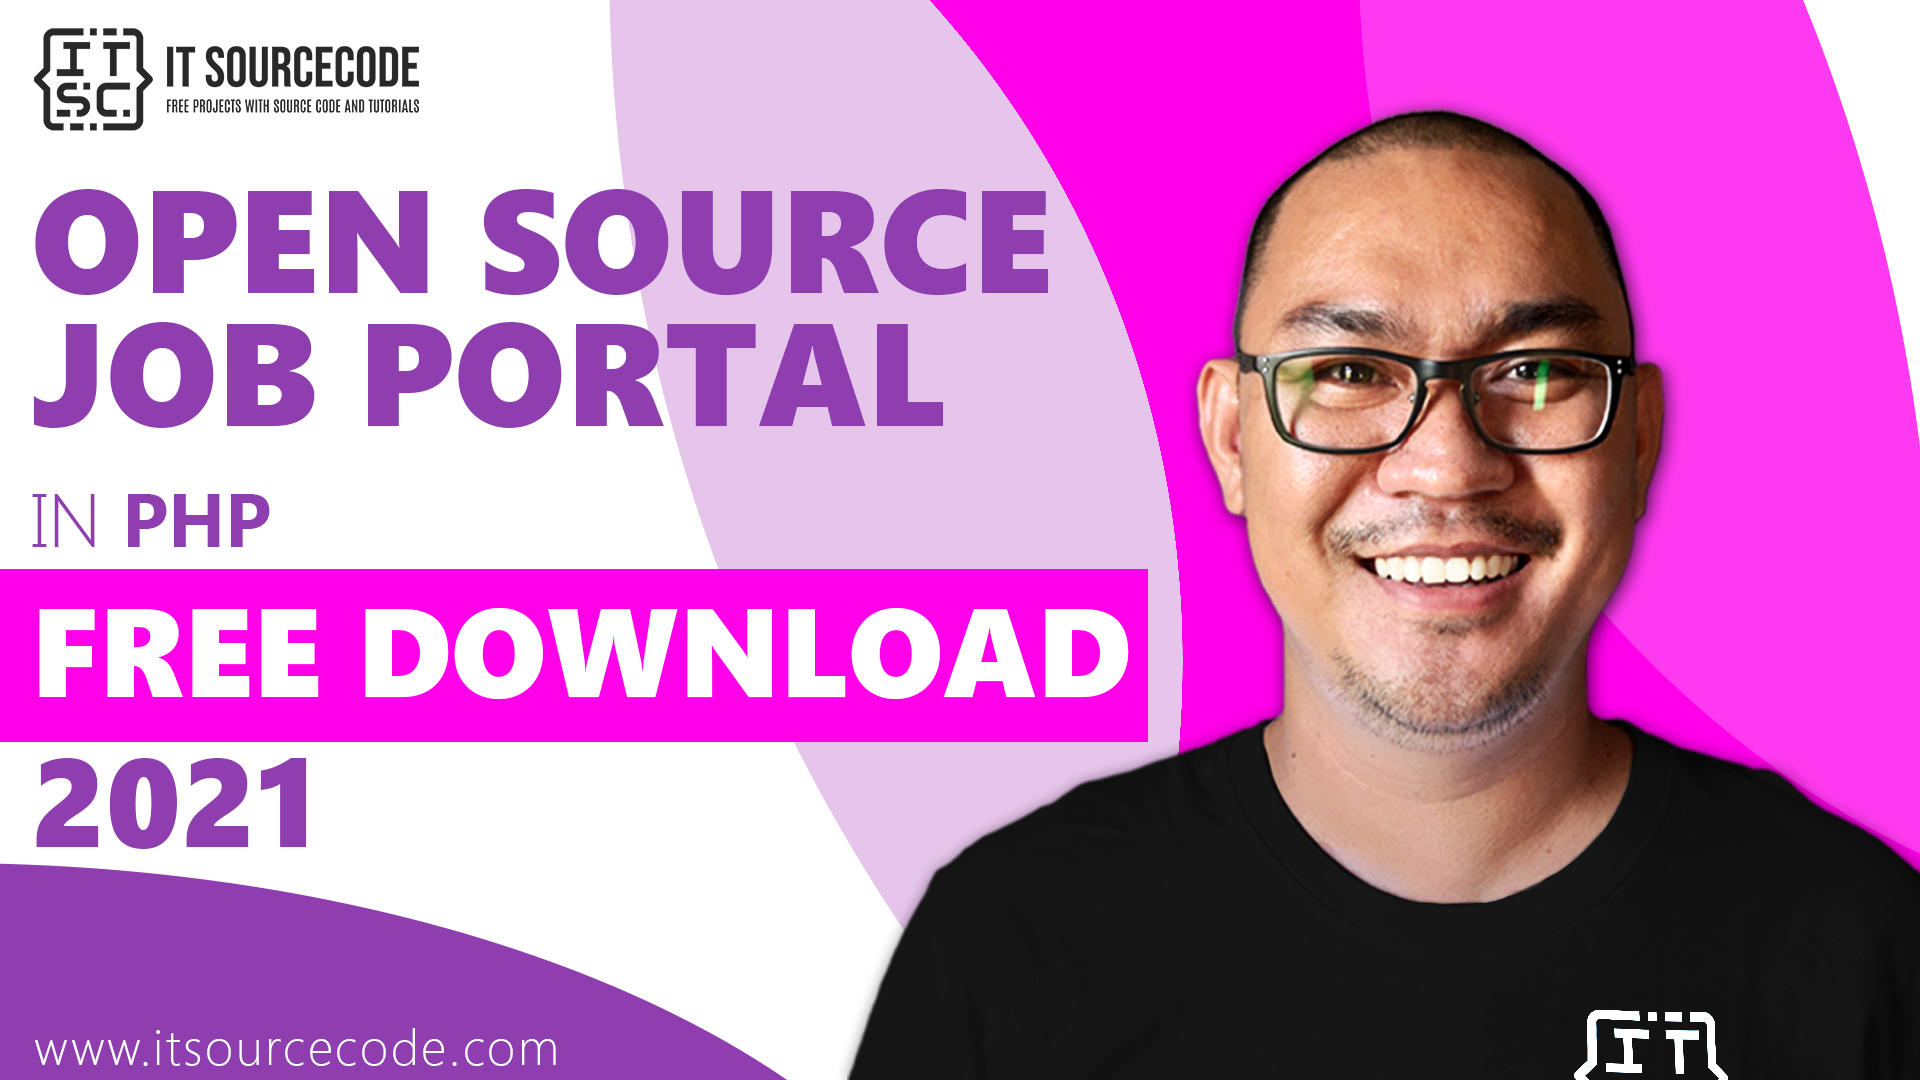 Open Source Job Portal In PHP Free Download